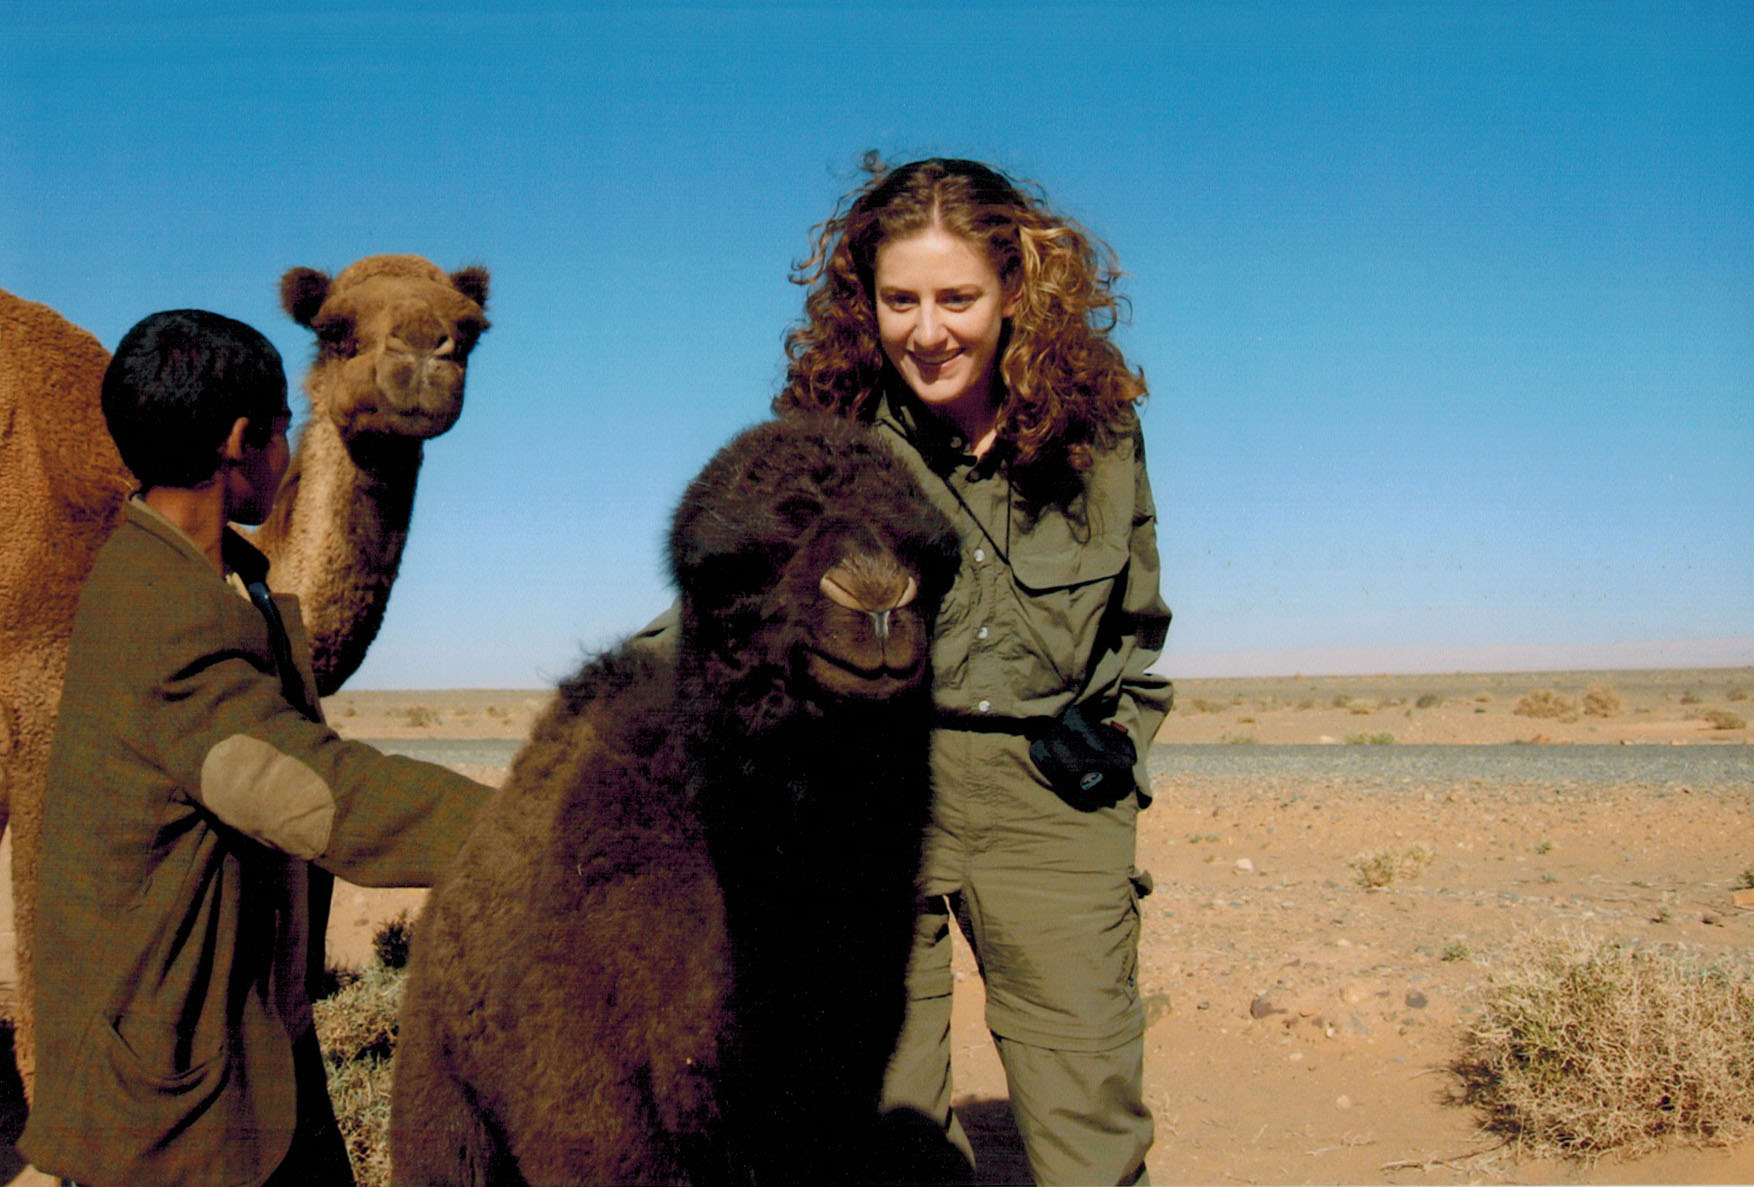 Christi petting a baby camel in Morocco's Berber Country